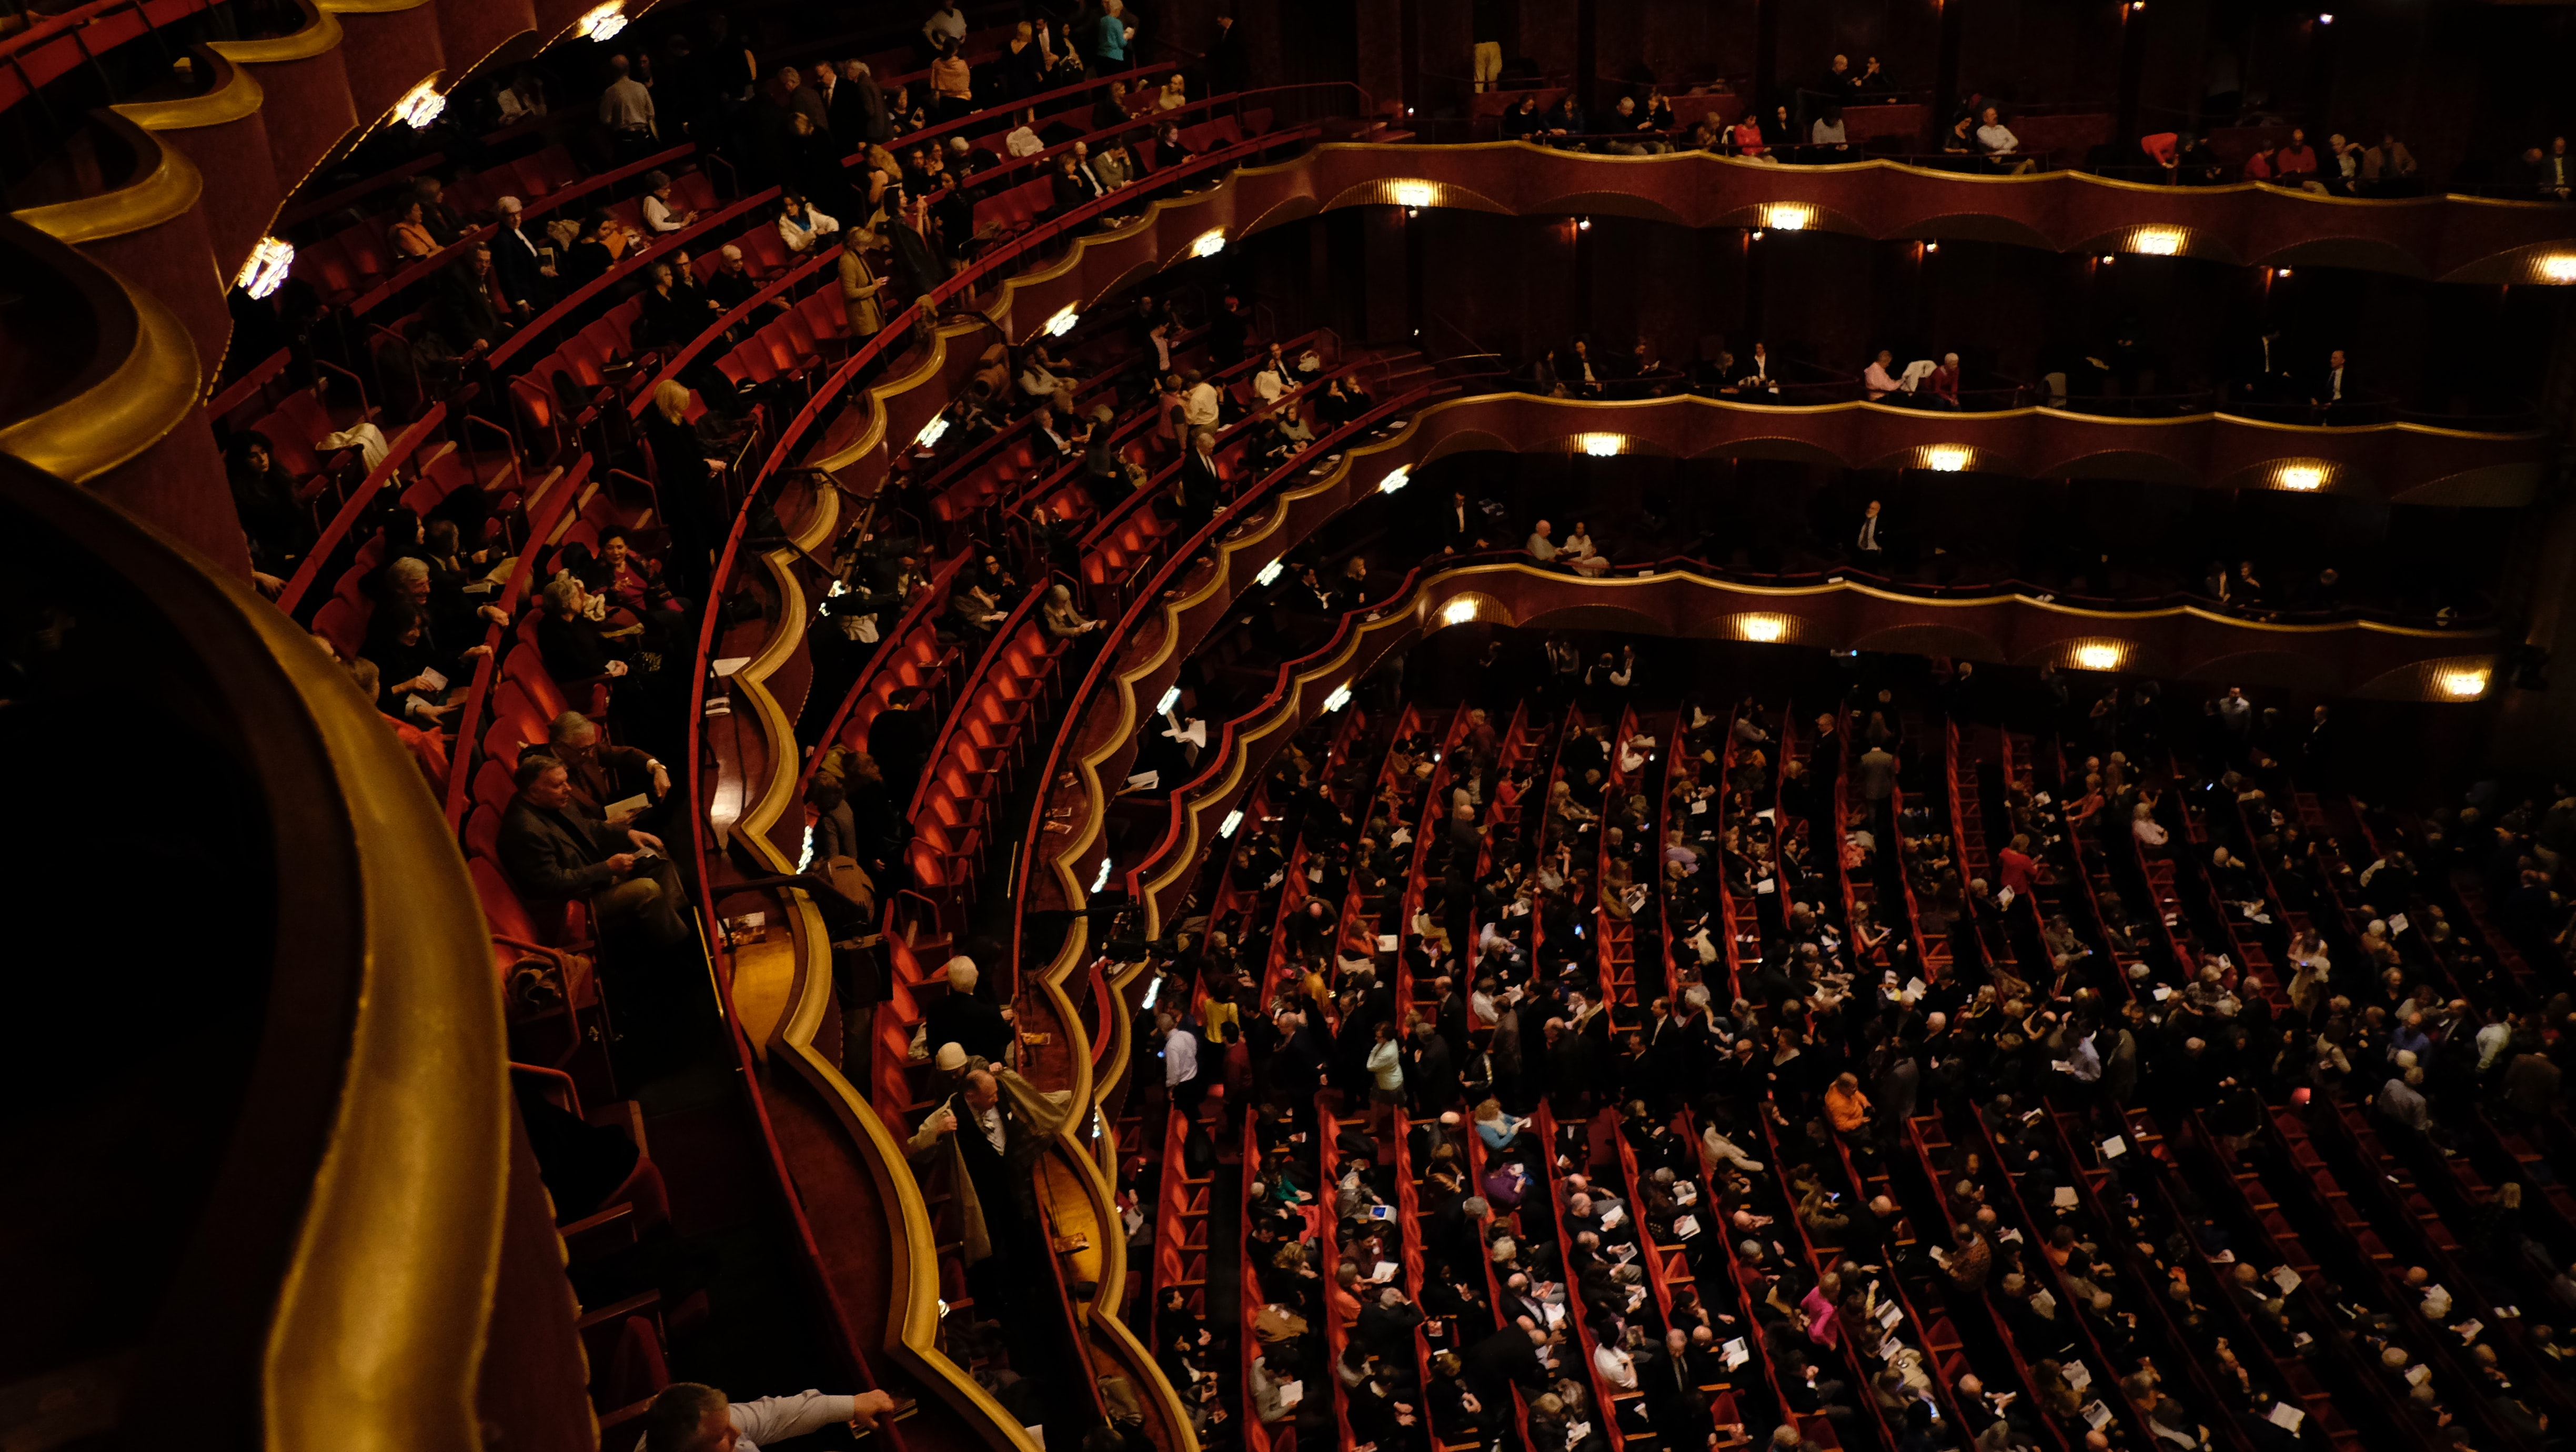 A performance venue with balcony tiers and orchestra floor filled with audience in red seats under soft lighting.